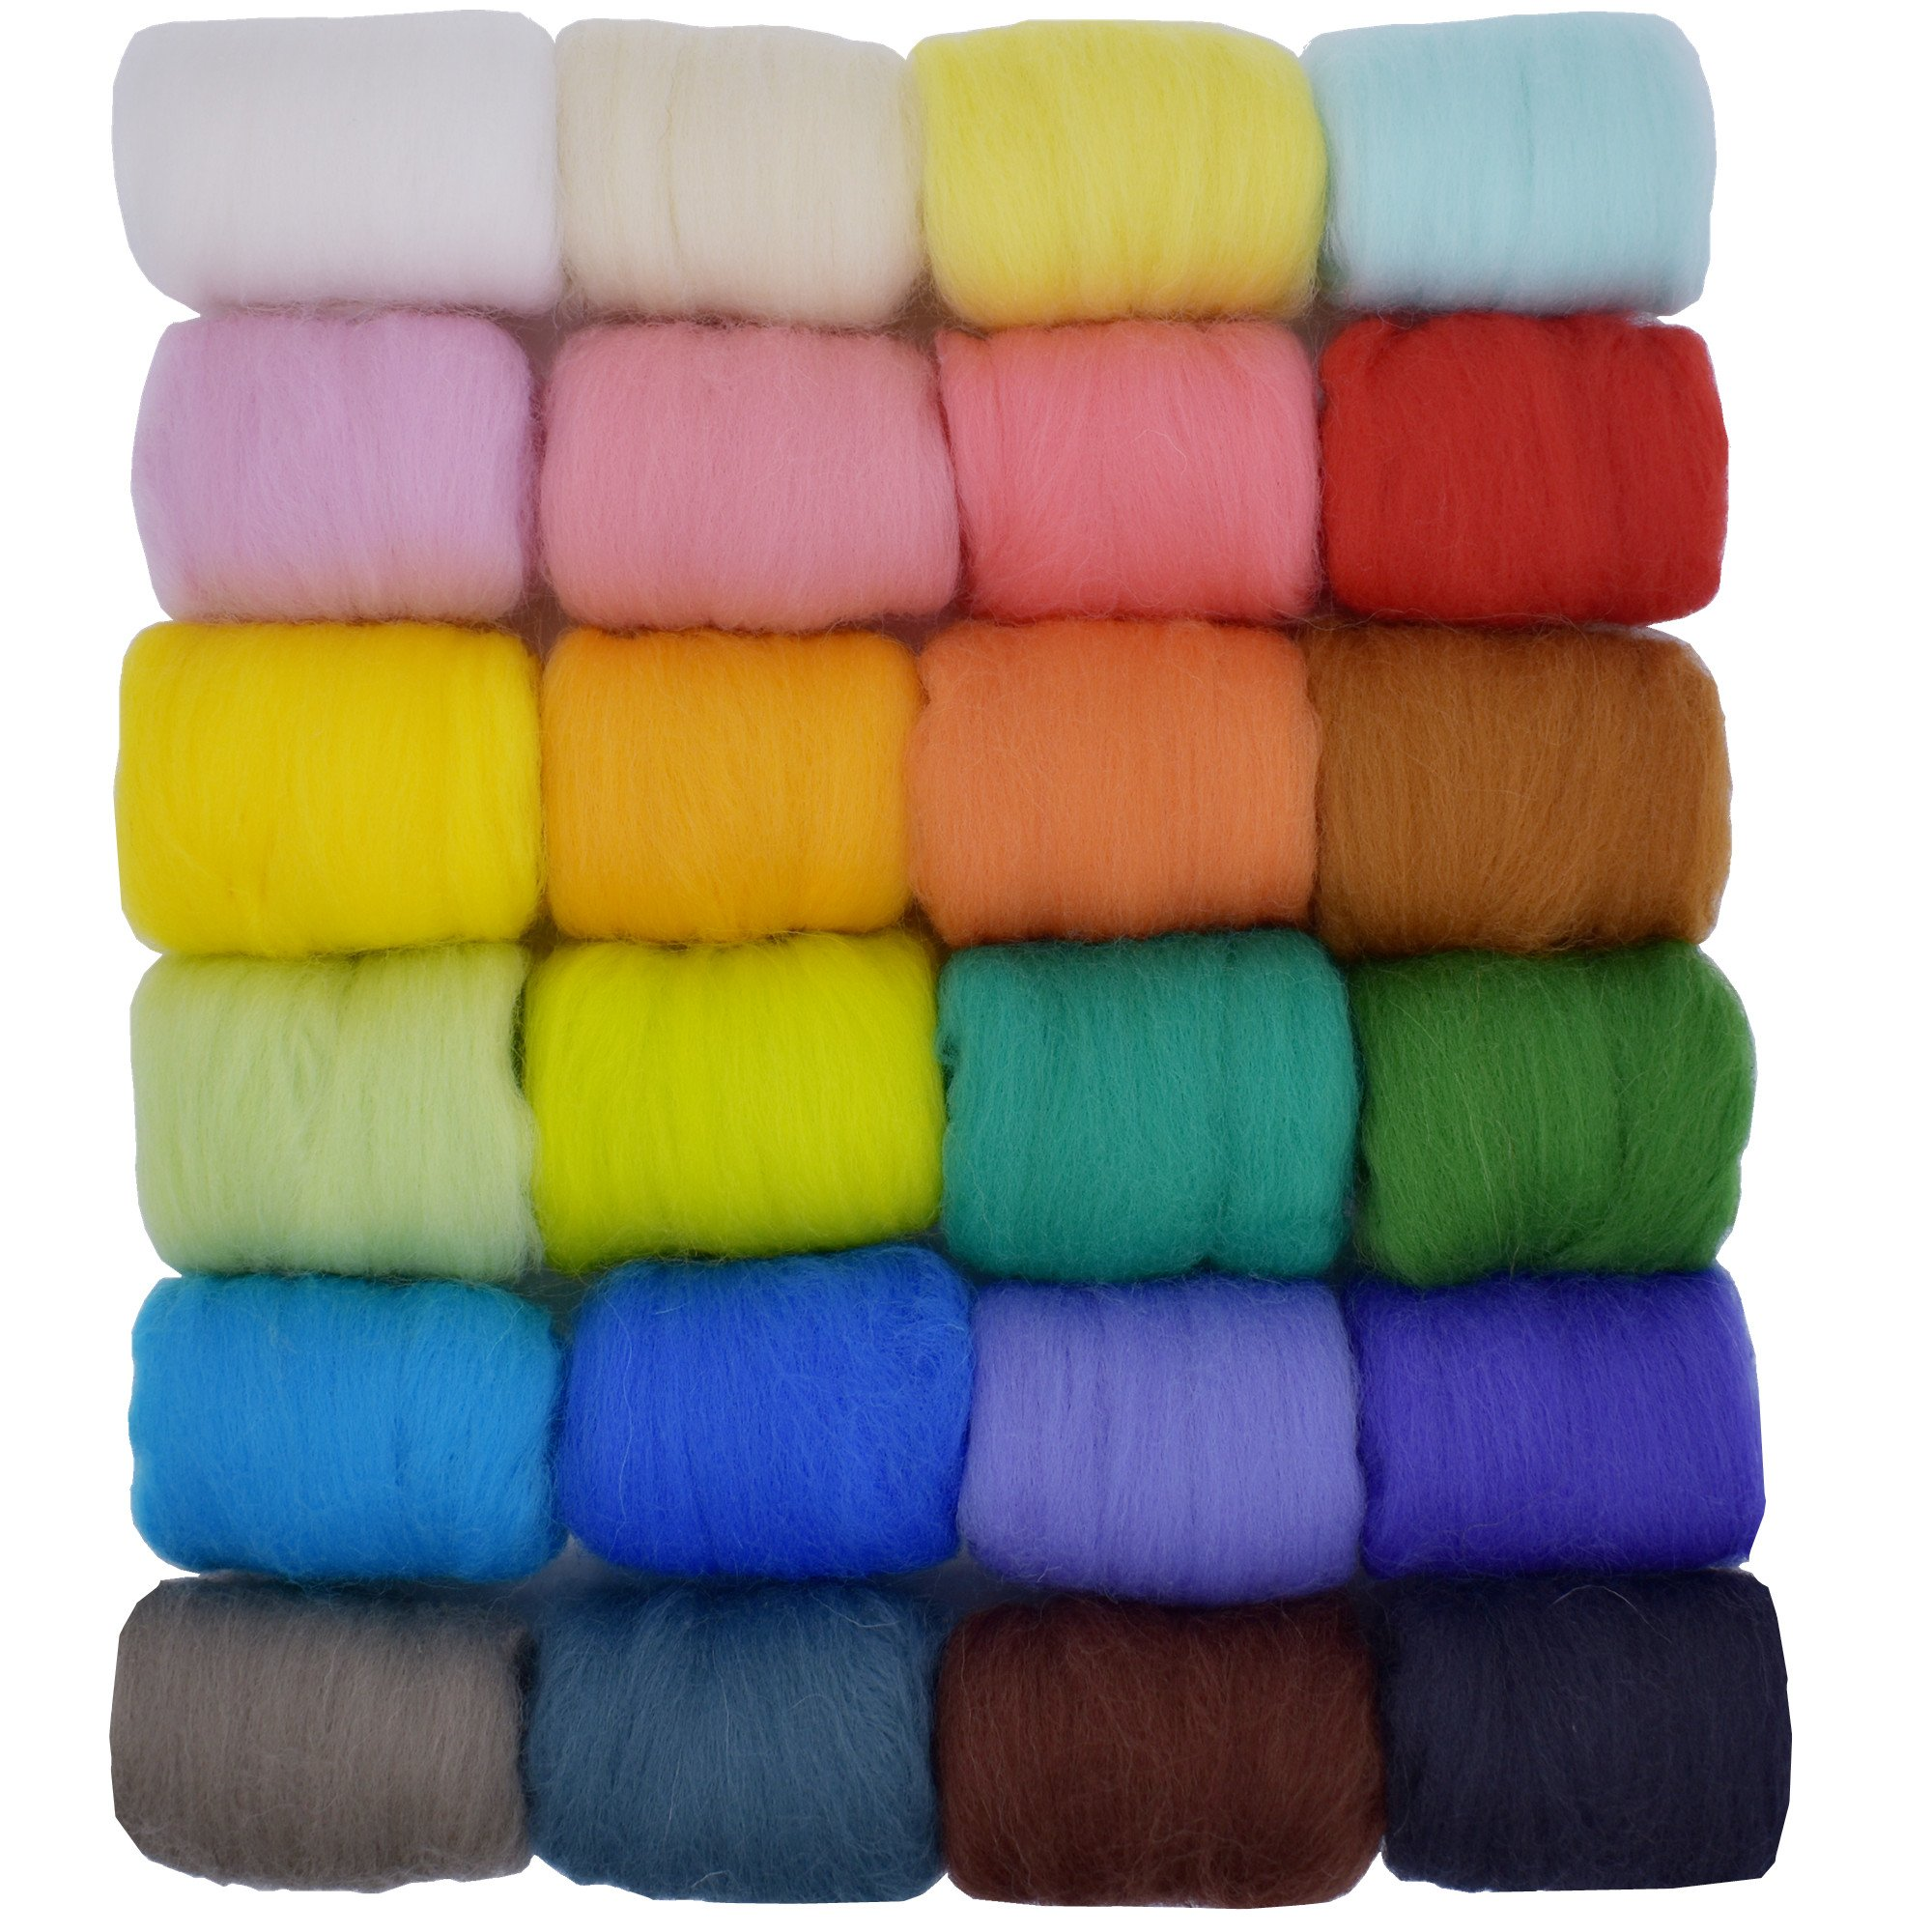 Wool Roving 24 Colors 5g/color Loveself felting wool kit for needle felting supplies Hand Spinning DIY Craft Materials